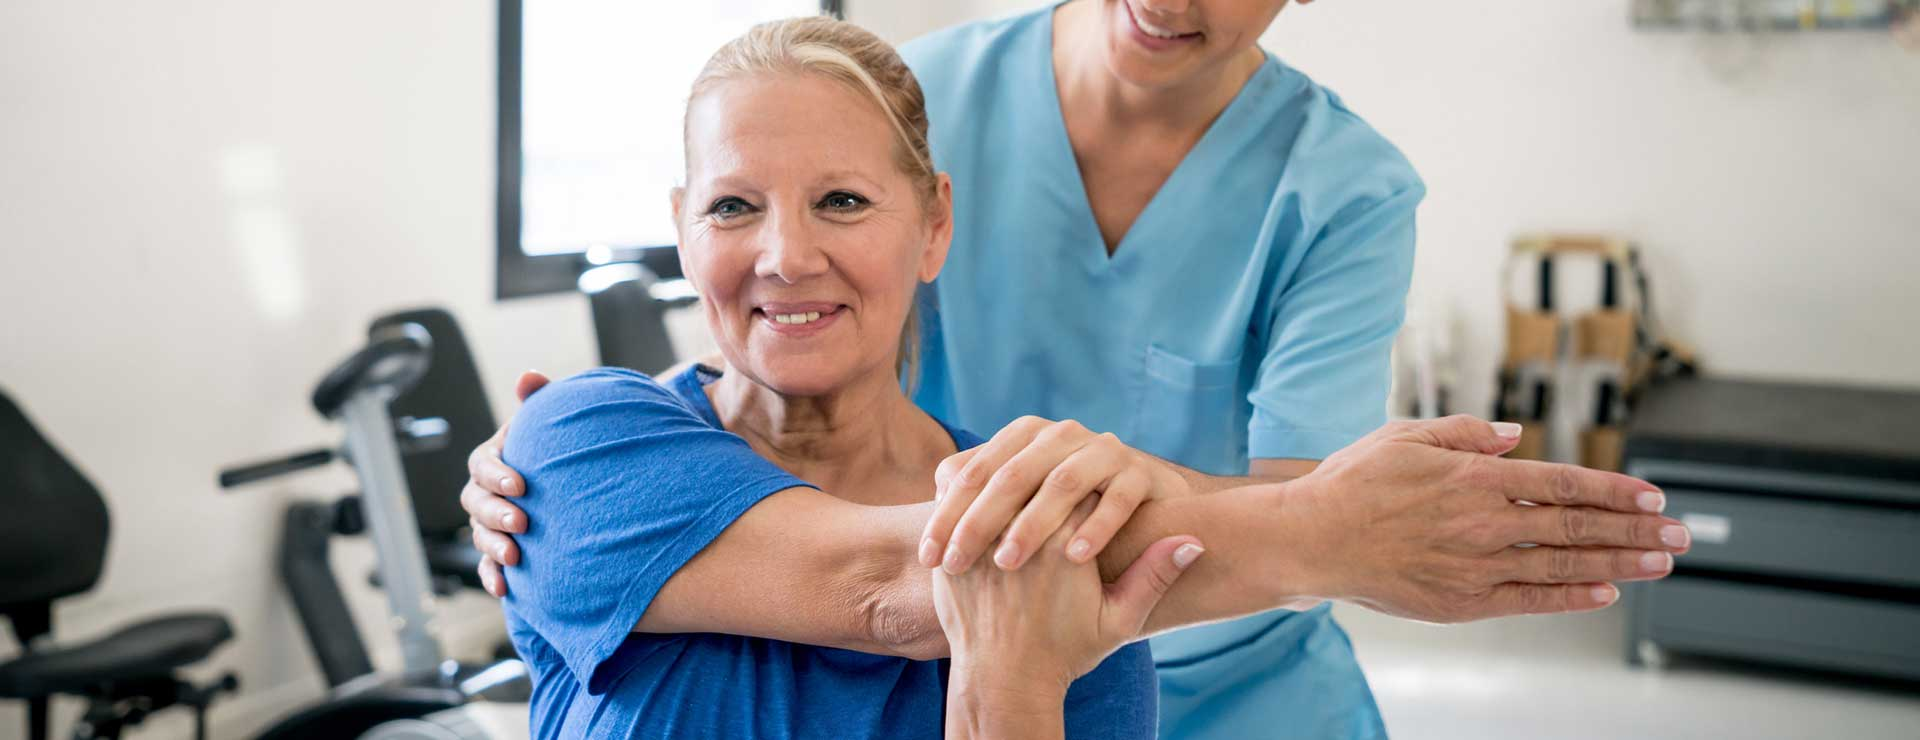 Physical therapist holding senior patient while she stretches her shoulder